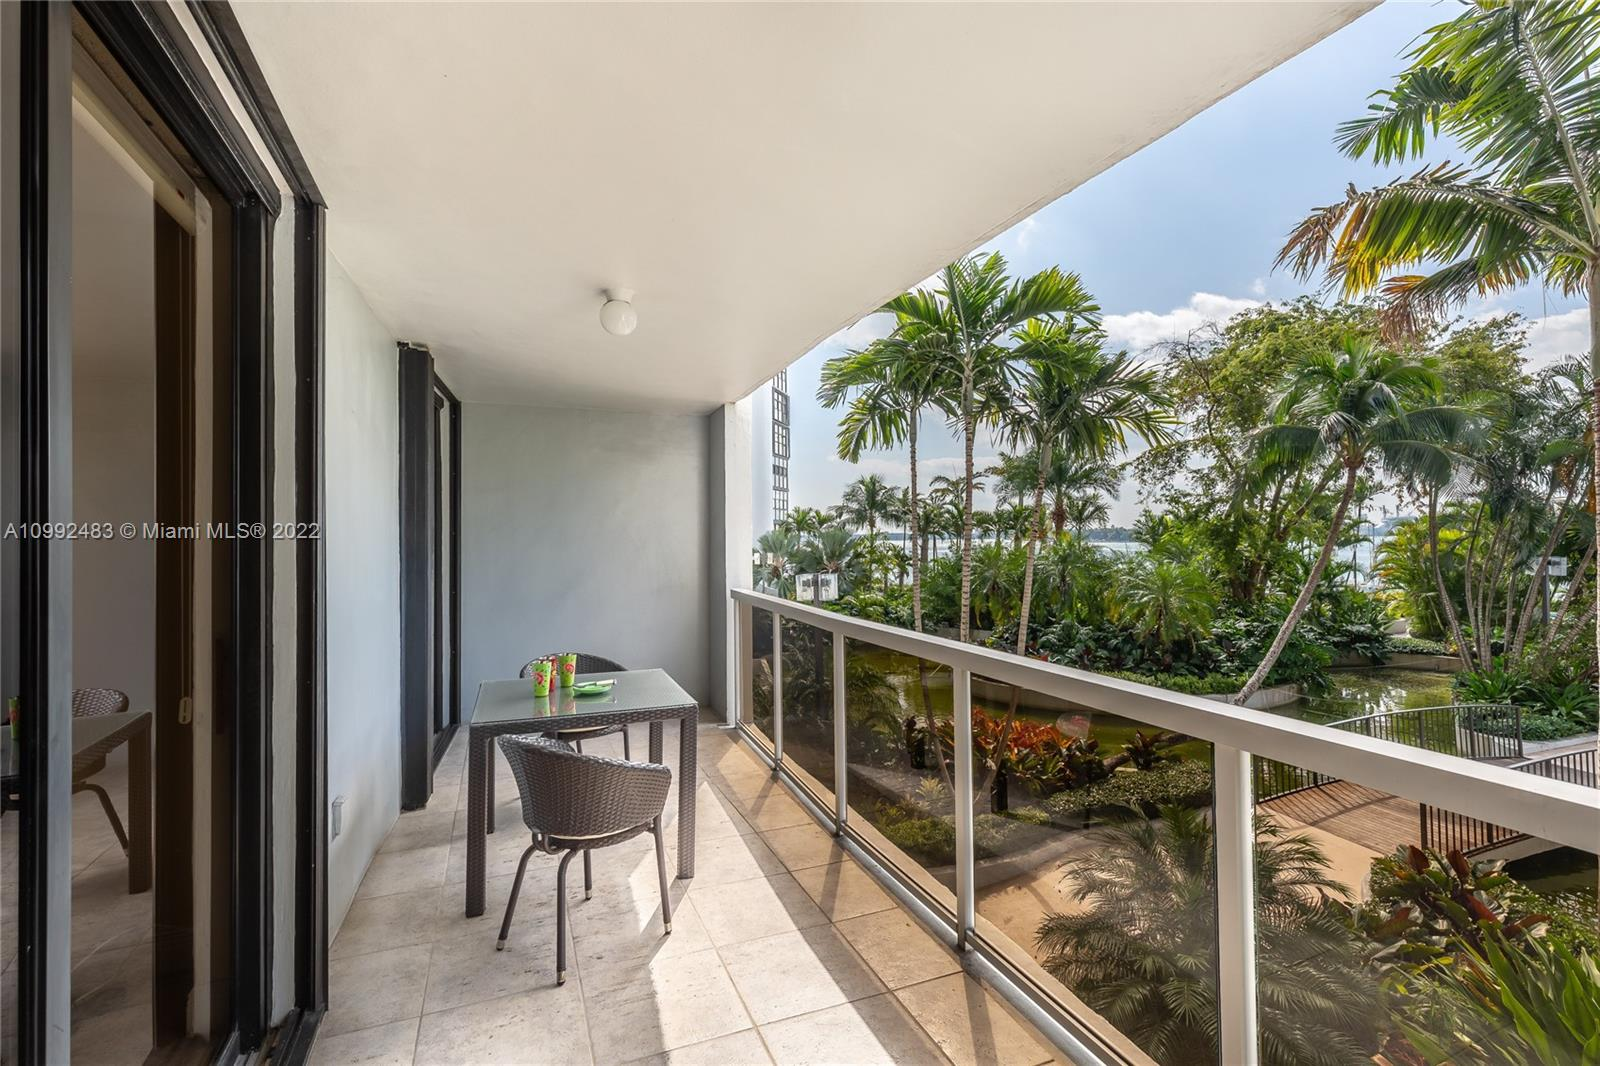 9  Island Ave #403 For Sale A10992483, FL